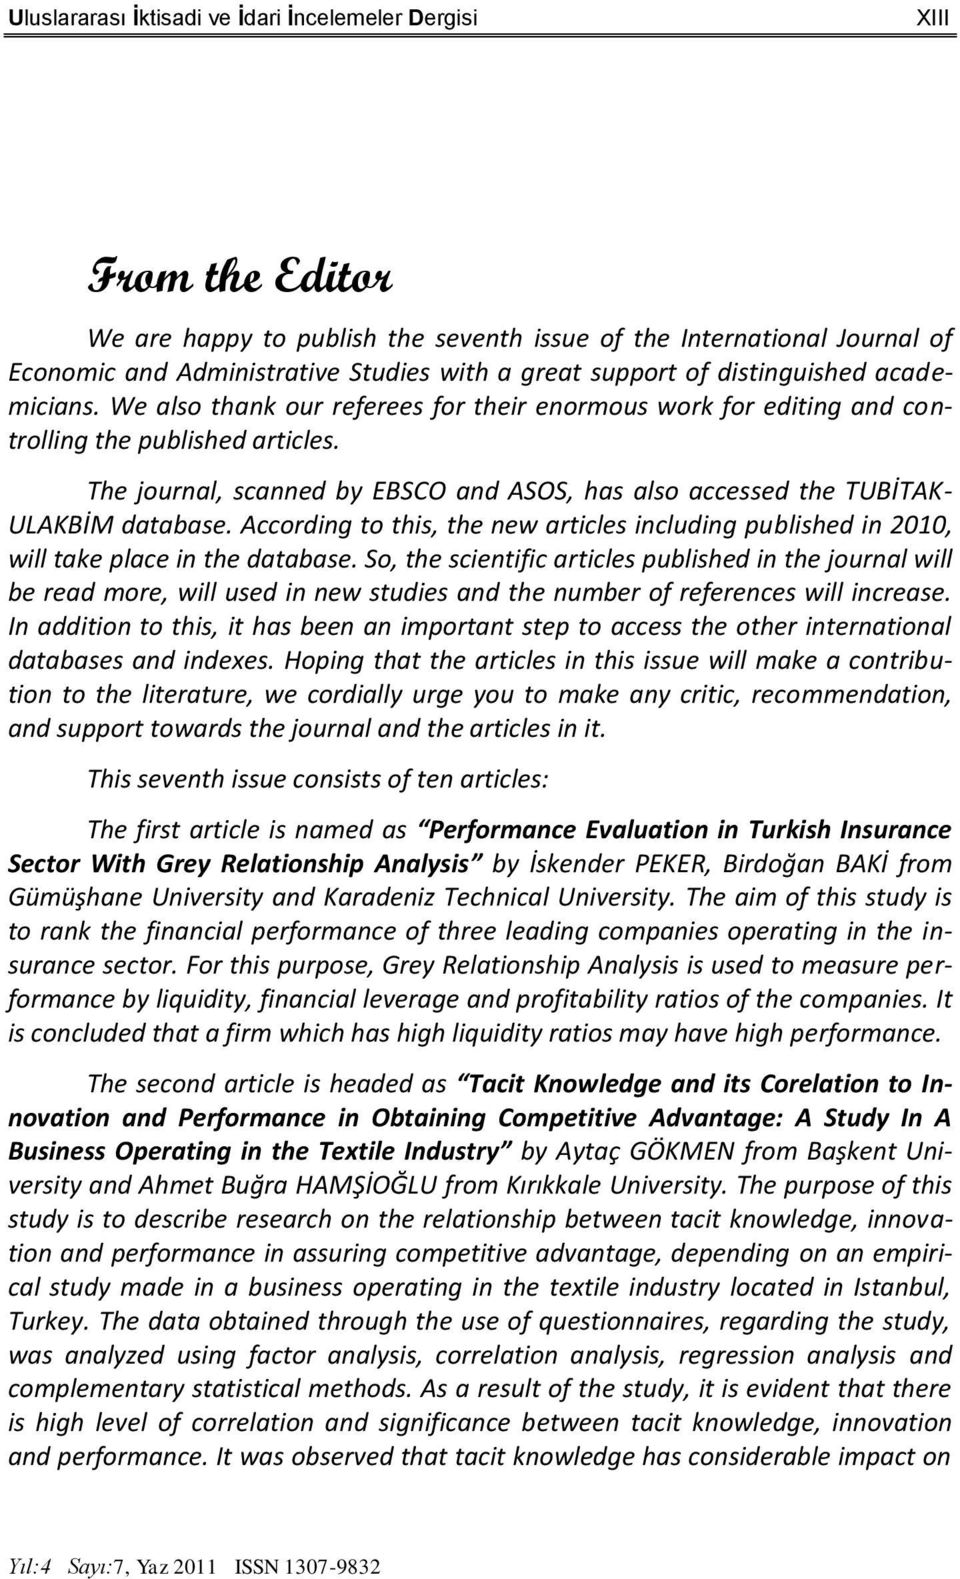 The journal, scanned by EBSCO and ASOS, has also accessed the TUBİTAK- ULAKBİM database. According to this, the new articles including published in 2010, will take place in the database.